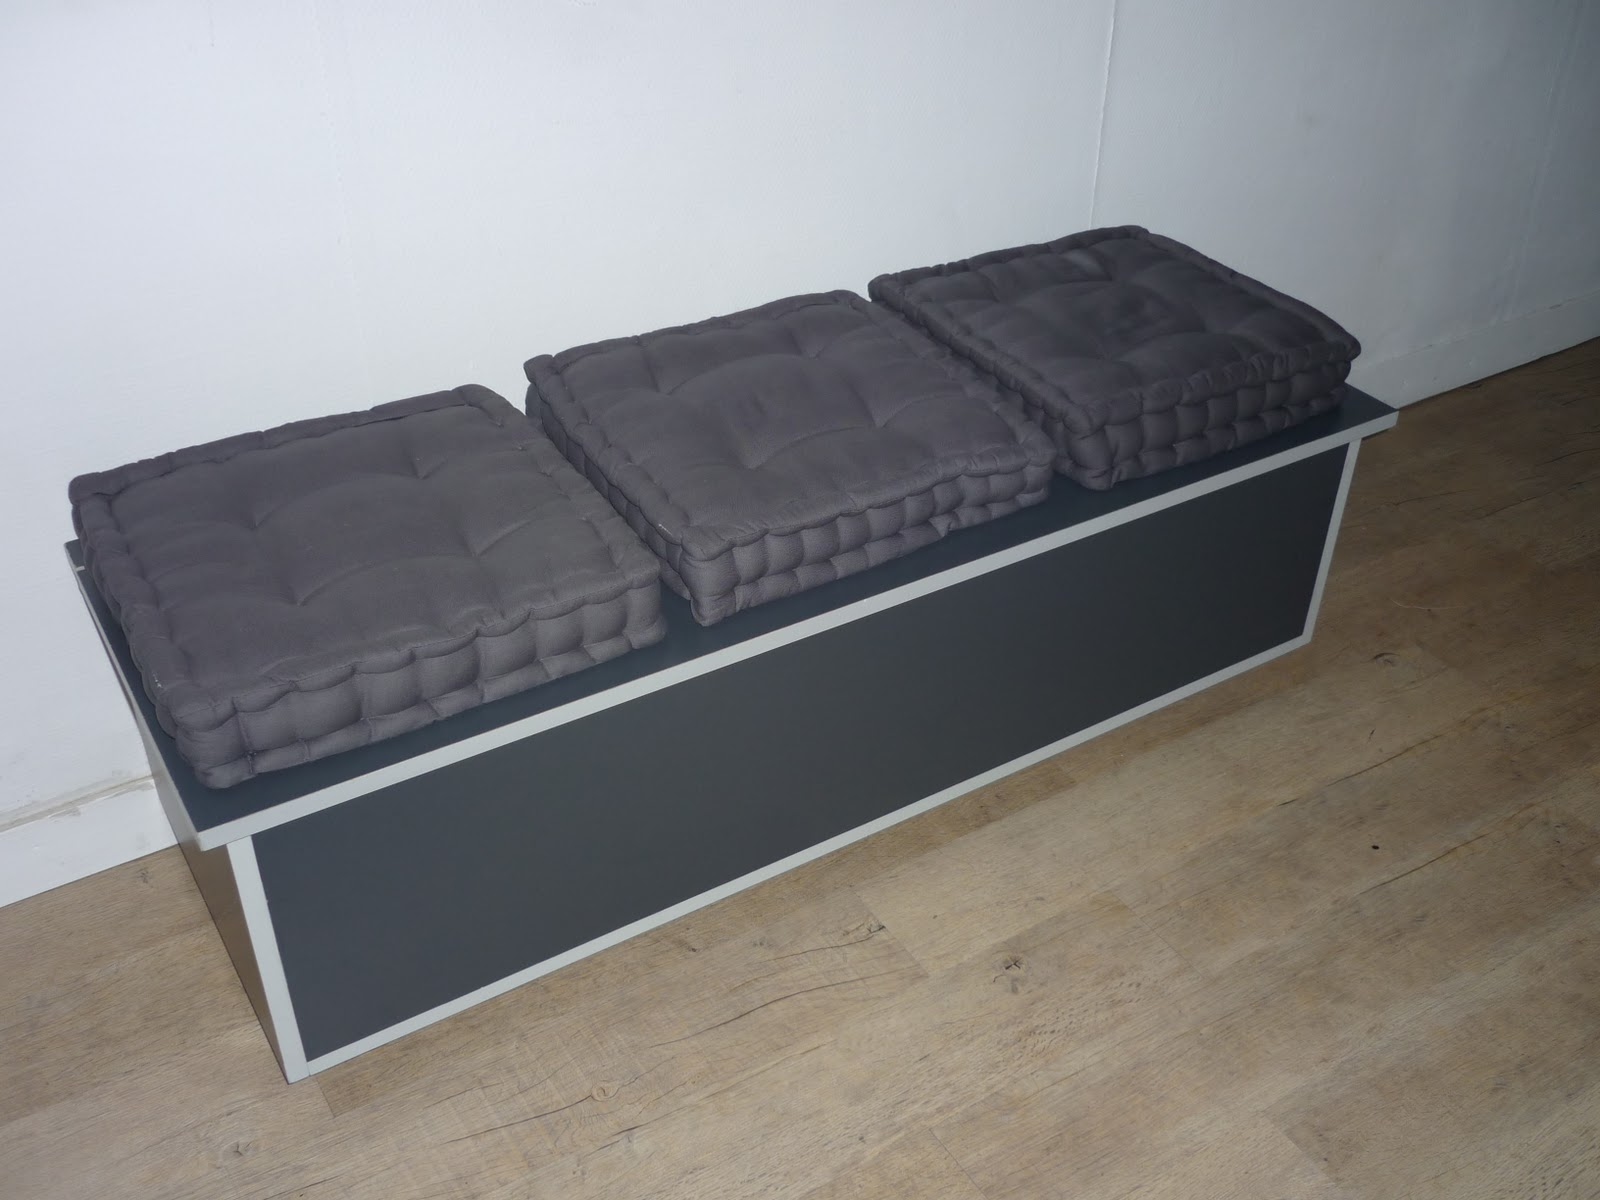 fabriquer une banquette en bois maison design. Black Bedroom Furniture Sets. Home Design Ideas